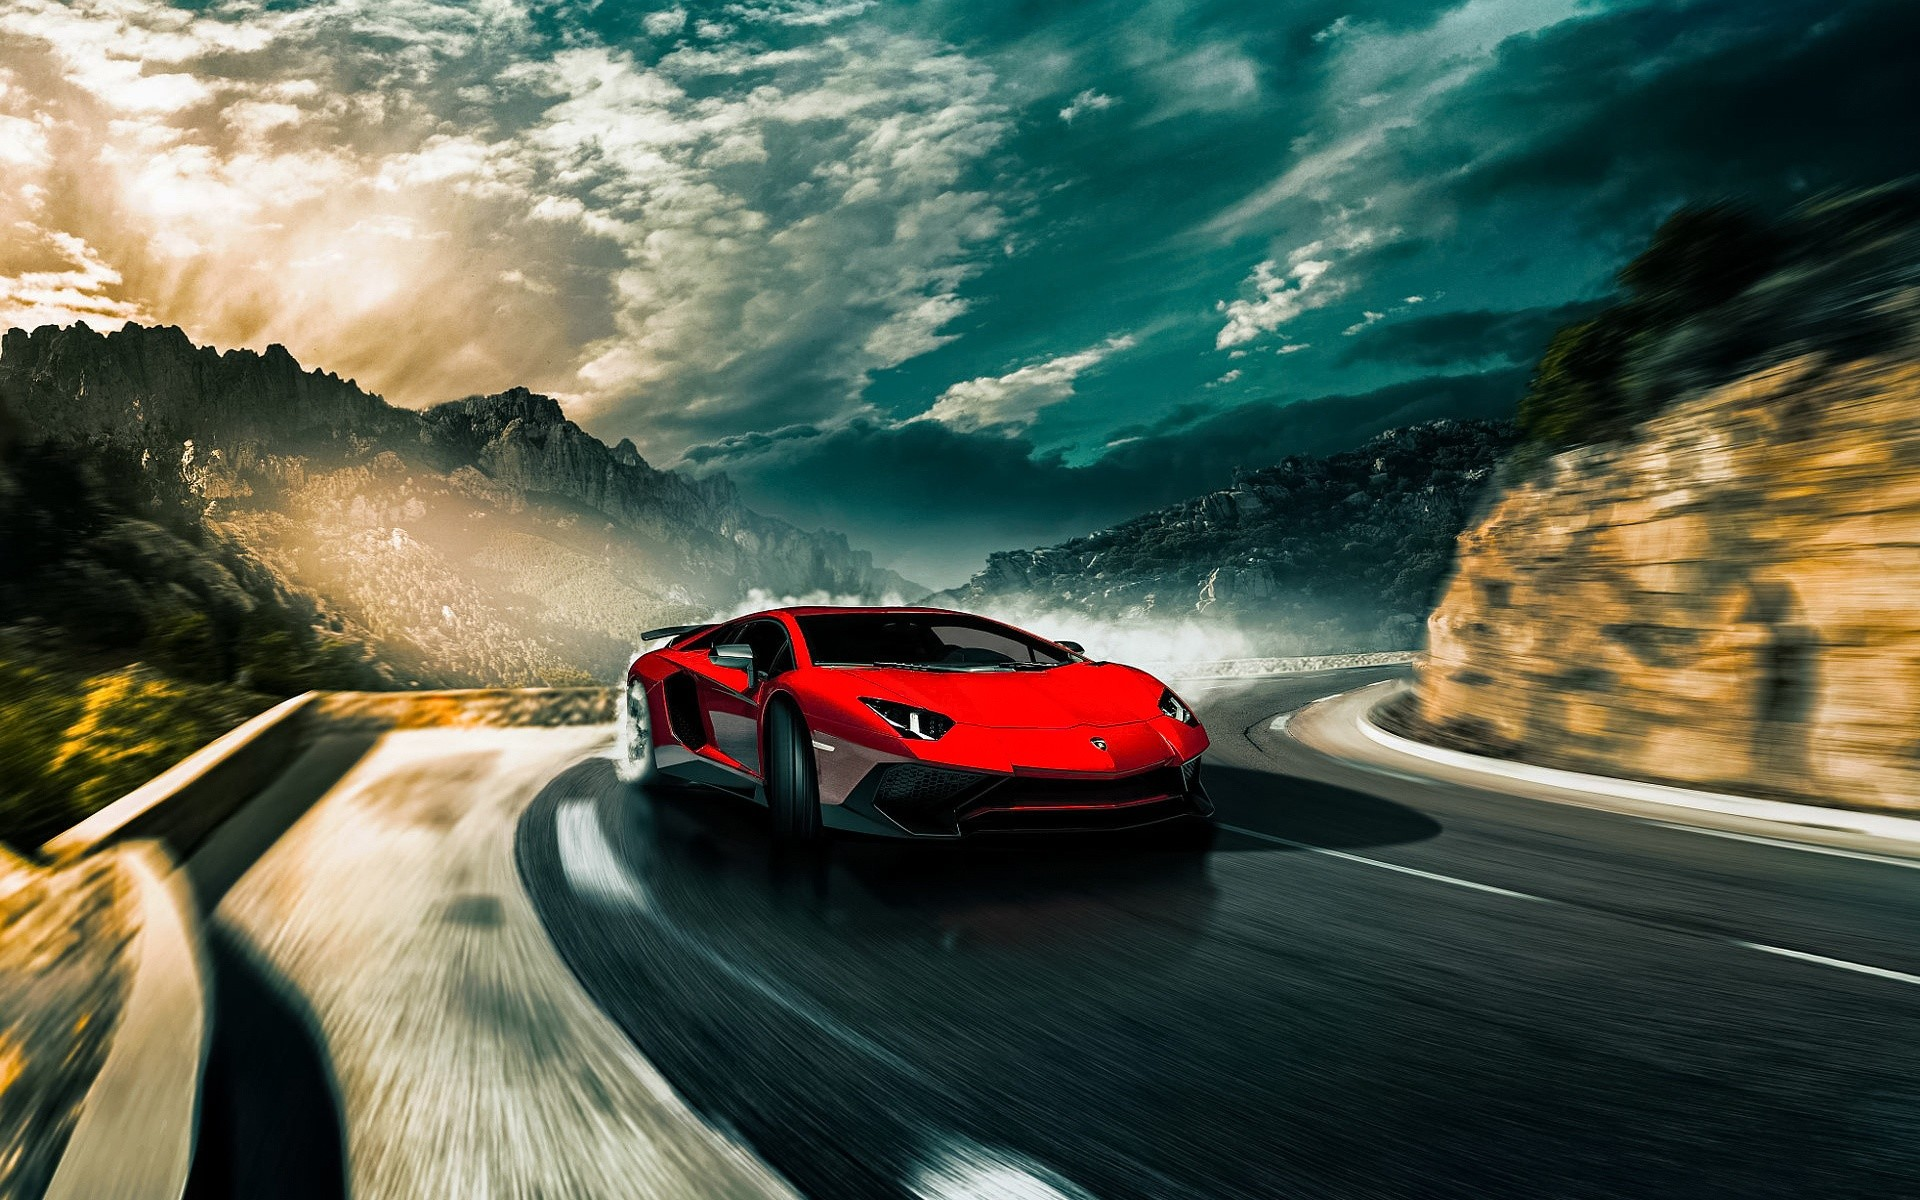 lamborghini desktop backgrounds (67+ images)